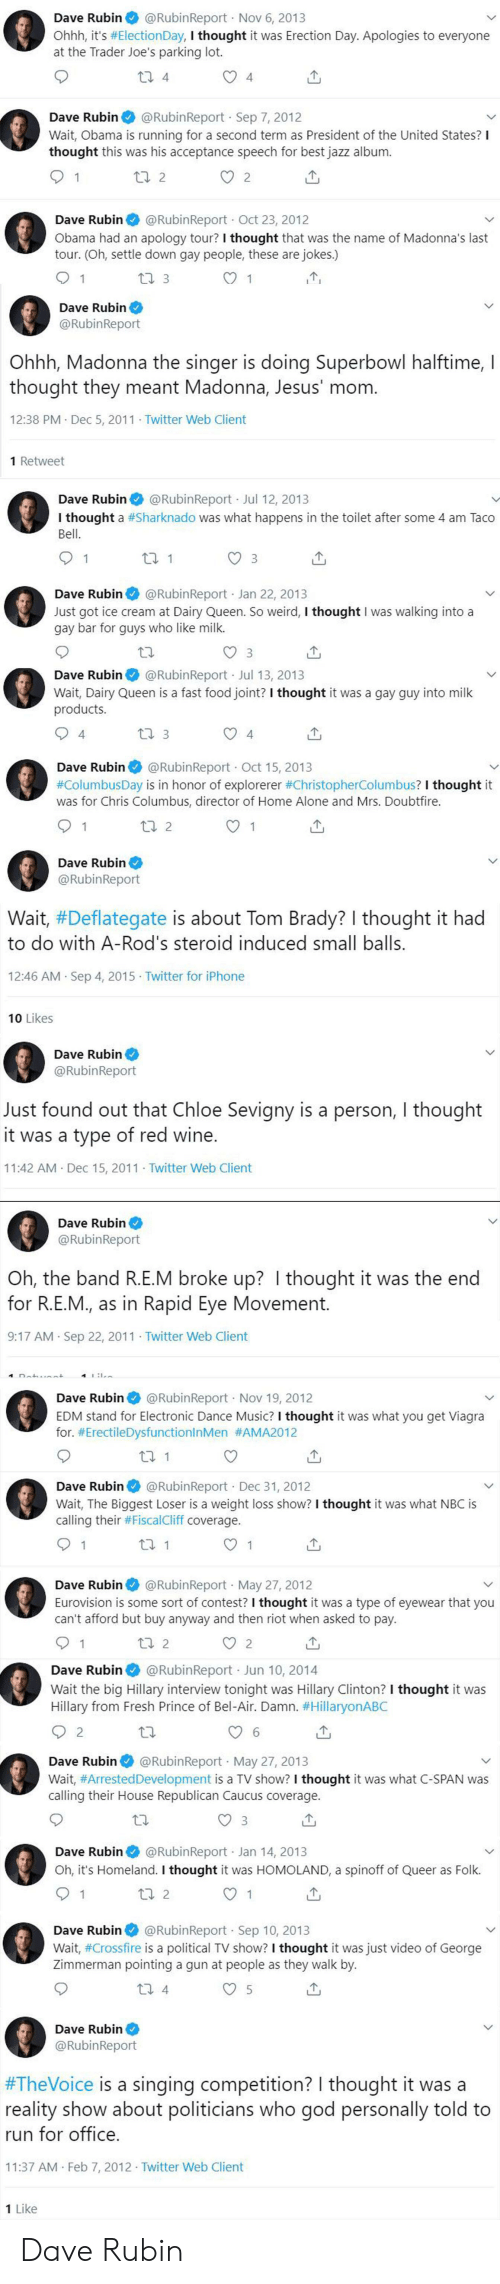 Being Alone, Fast Food, and Food: @RubinReport Nov 6, 2013  Dave Rubin  Ohhh, it's #ElectionDay, I thought it was Erection Day. Apologies to everyone  at the Trader Joe's parking lot.  t1 4  4  @RubinReport Sep 7, 2012  Dave Rubin  Wait, Obama is running for a second term as President of the United States?  thought this was his acceptance speech for best jazz album  ti 2  2  @RubinReport Oct 23 , 2012  apology tour? I thought that was the name of Madonna's last  Dave Rubin  Obama had an  tour. (Oh, settle down gay people, these are jokes.)  1 3  1  Dave Rubin  @RubinReport  Ohhh, Madonna the singer is doing Superbowl halftime, I  thought they meant Madonna, Jesus' mom.  12:38 PM Dec 5, 2011 Twitter Web Client  1 Retweet  @RubinReport Jul 12, 2013  Dave Rubin  I thought a #Sharknado was what happens in the toilet after some 4 am Taco  Bell  ti 1  1  3  Dave Rubin @RubinReport Jan 22, 2013  Just got ice cream at Dairy Queen. So weird, I thought I was walking into a  gay bar for guys who like milk.  @RubinReport Jul 13, 2013  Dave Rubin  Wait, Dairy Queen is a fast food joint? I thought it was a gay guy into milk  products.  4  1 3  4  @RubinReport Oct 15, 2013  Dave Rubin  .  #ColumbusDay is in honor of explorerer #ChristopherColumbus? I thought it  was for Chris Columbus, director of Home Alone and Mrs. Doubtfire.  2  1  Dave Rubin  @RubinReport  Wait, #Deflategate is about Tom Brady? I thought it had  to do with A-Rod's steroid induced small balls.  12:46 AM Sep 4, 2015 Twitter for iPhone  10 Likes  Dave Rubin  @RubinReport  Just found out that Chloe Sevigny is a person, I thought  it was a type of red wine.  11:42 AM Dec 15, 2011 Twitter Web Client  Dave Rubin  @RubinReport  Oh, the band R.E.M broke up? I thought it was the end  for R.E.M., as in Rapid Eye Movement.  9:17 AM Sep 22, 2011 Twitter Web Client  4I  @RubinReportNov 19, 2012  Dave Rubin  EDM stand for Electronic Dance Music? I thought it was what you get Viagra  for. #ErectileDysfunctionlnMen #AMA2012  @